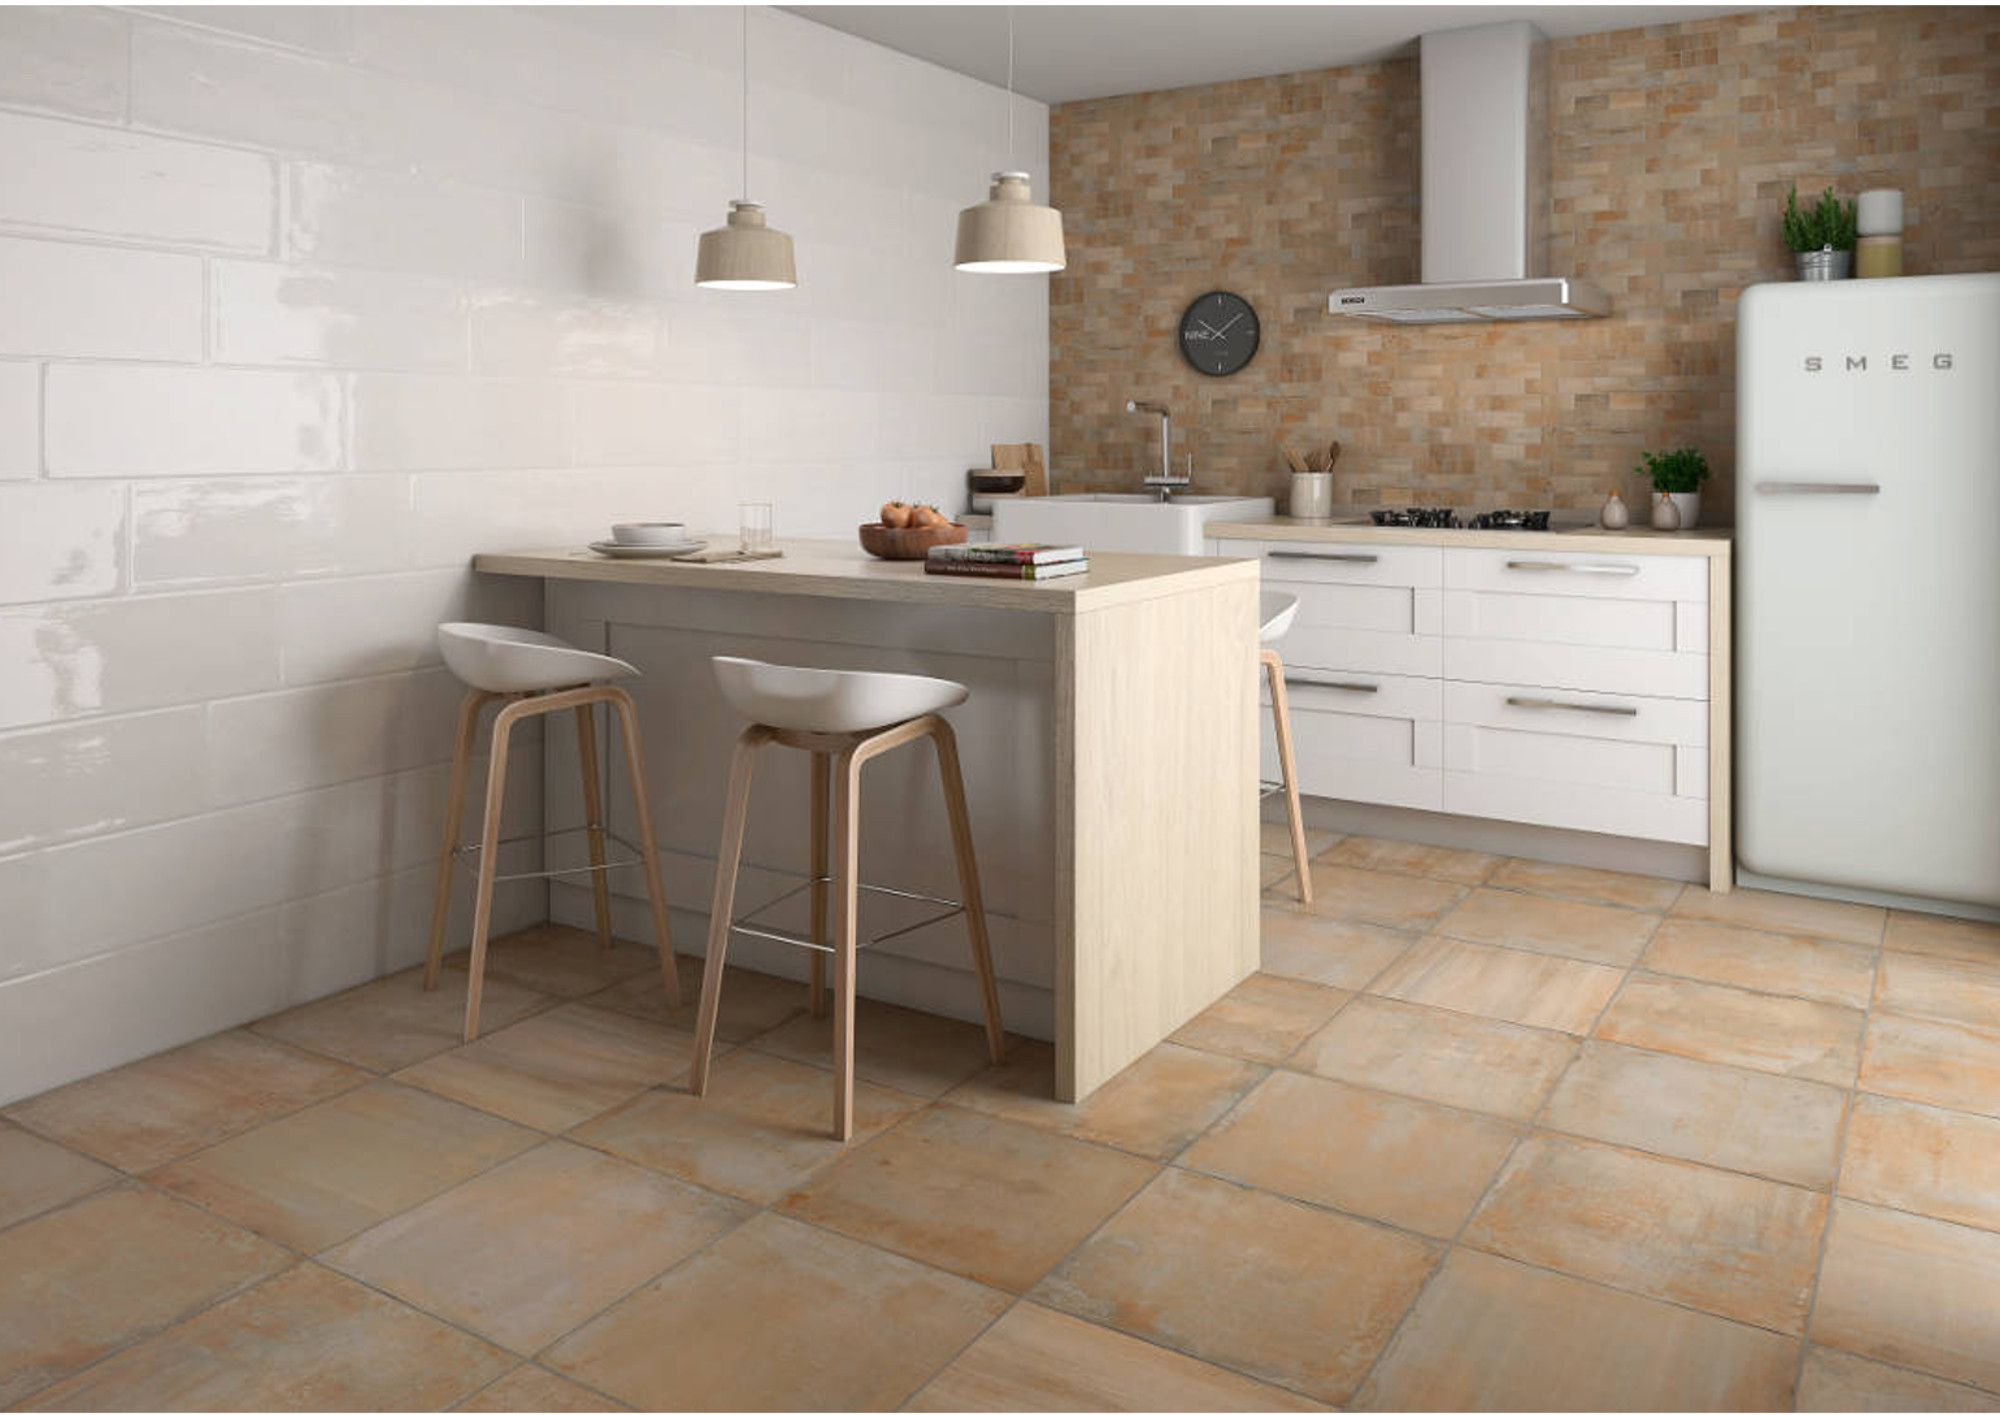 Magnolia Collection Ceramic Tiles By Roca Magnolia Collection By